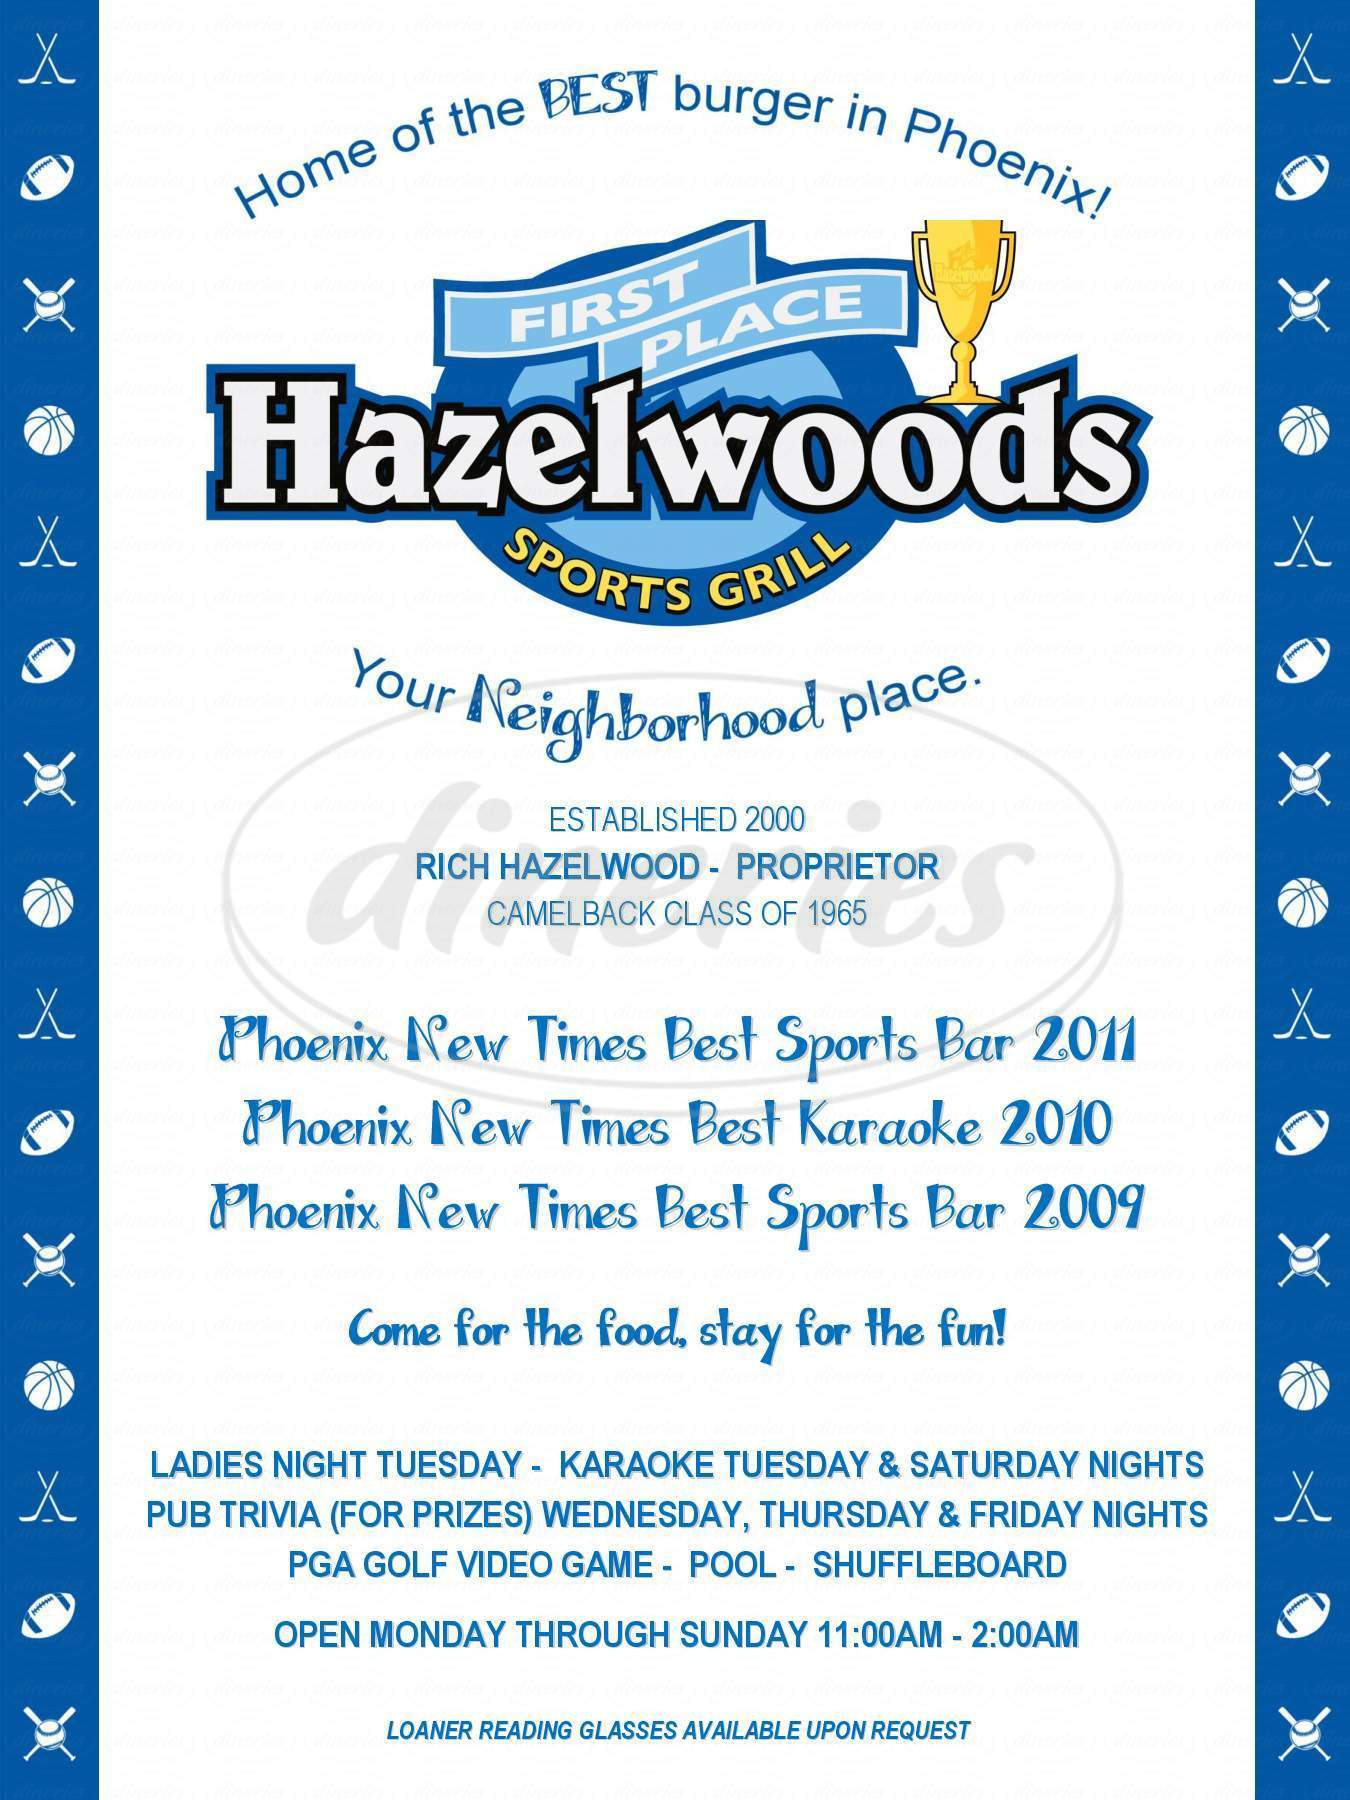 menu for Hazelwoods First Place Sports Grill